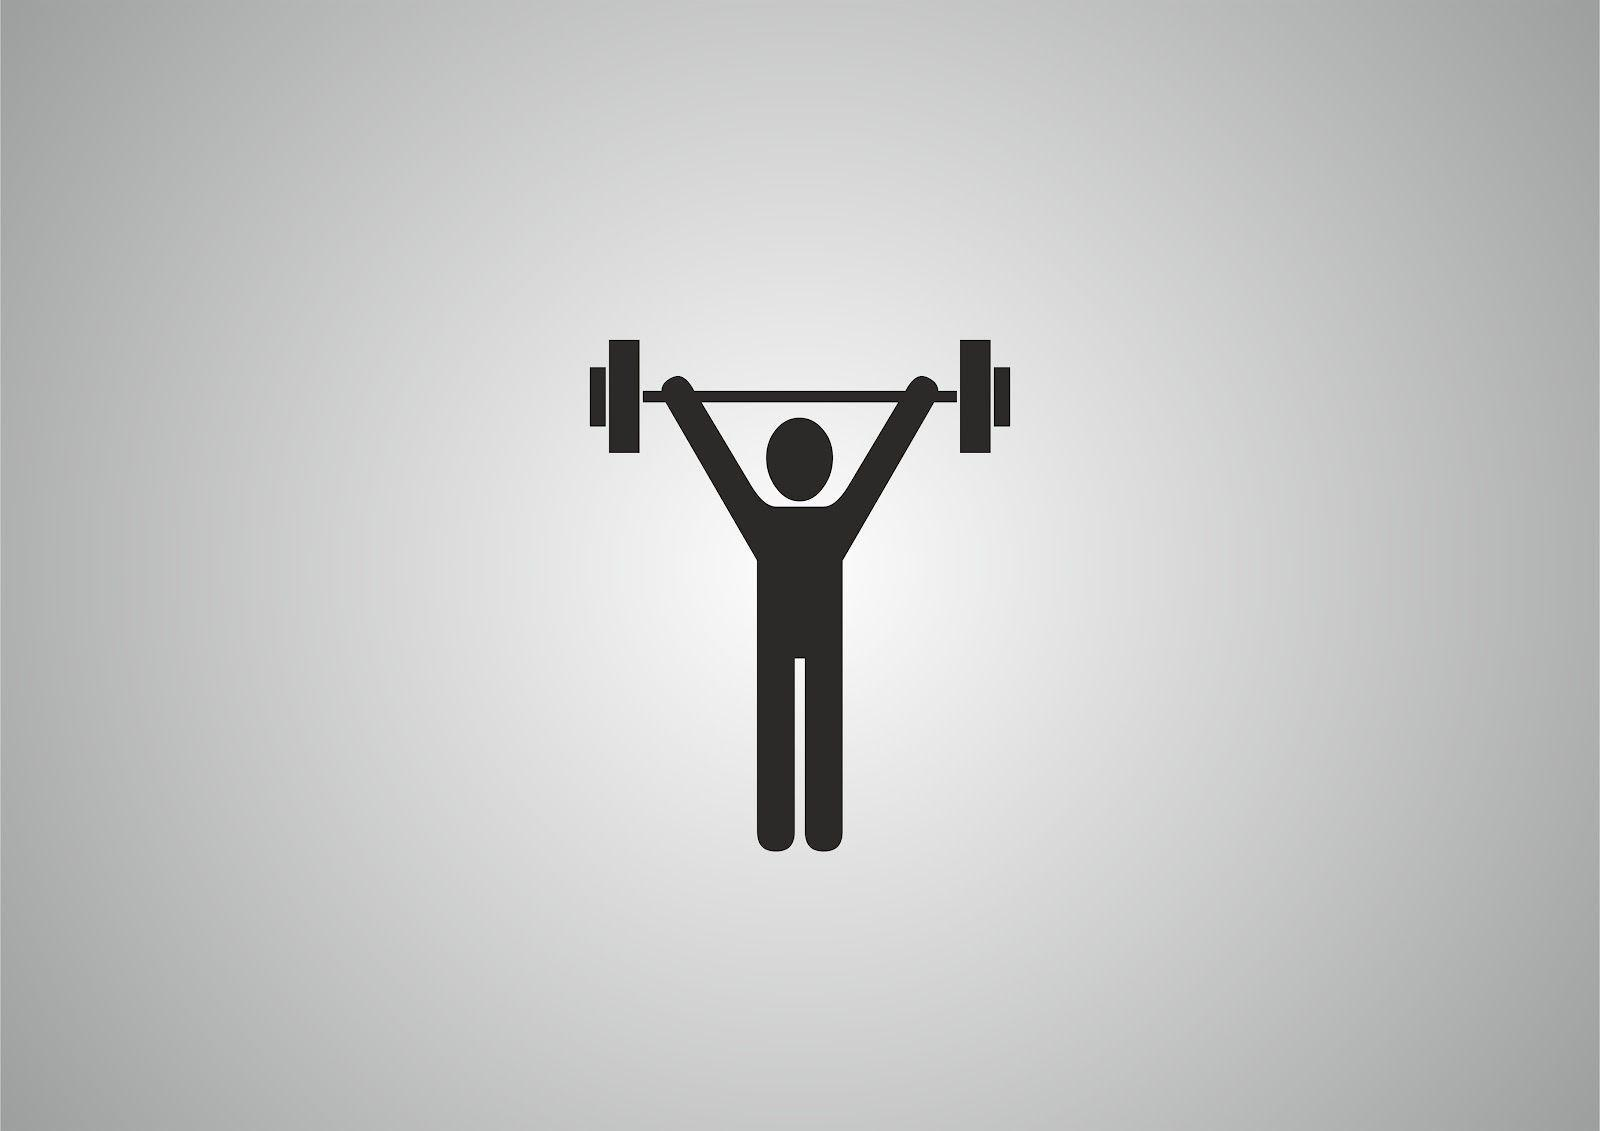 Fitness Backgrounds Image - Wallpaper Cave